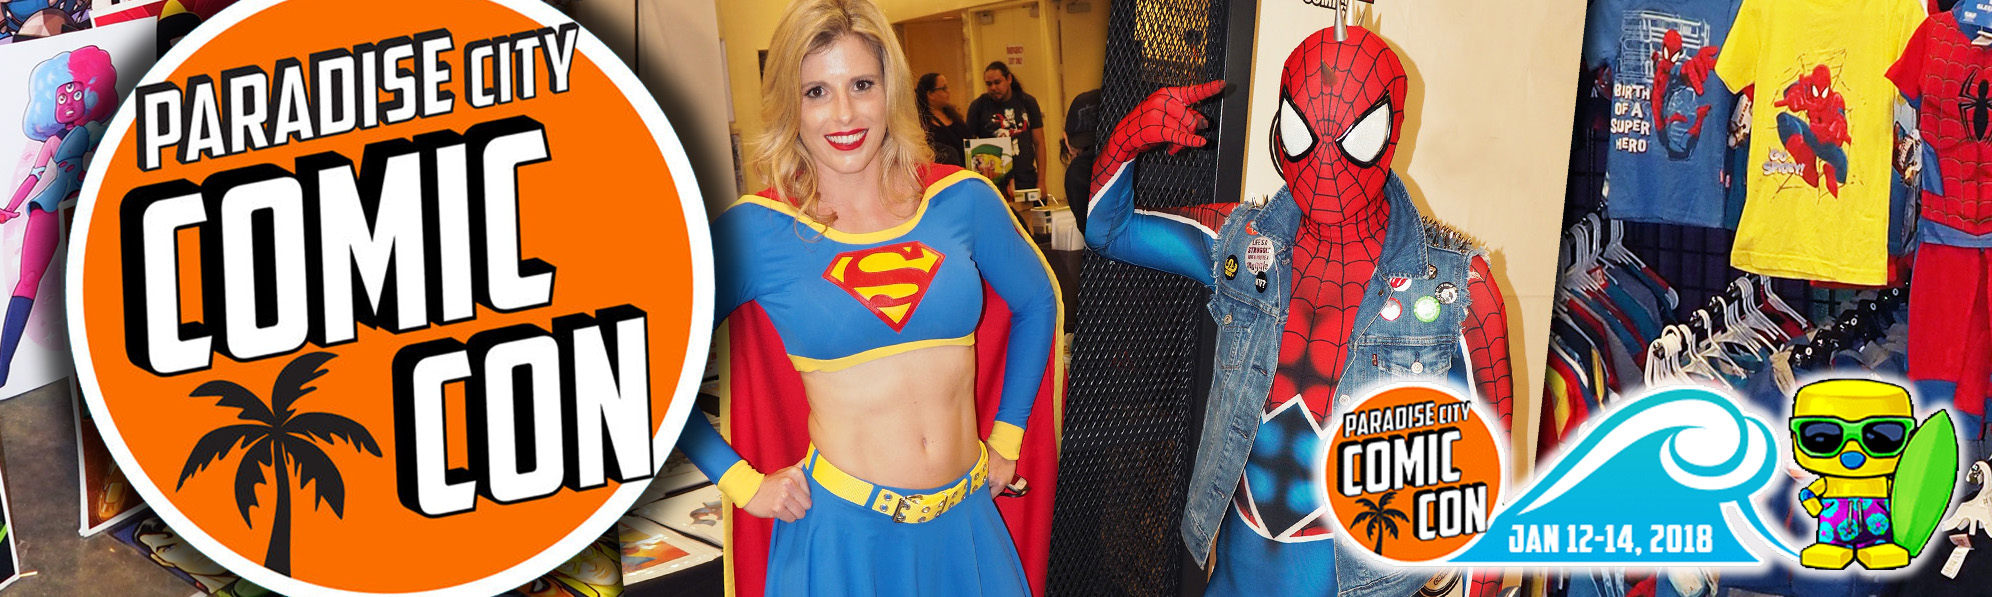 Paradise City Comic-Con regresa a Miami